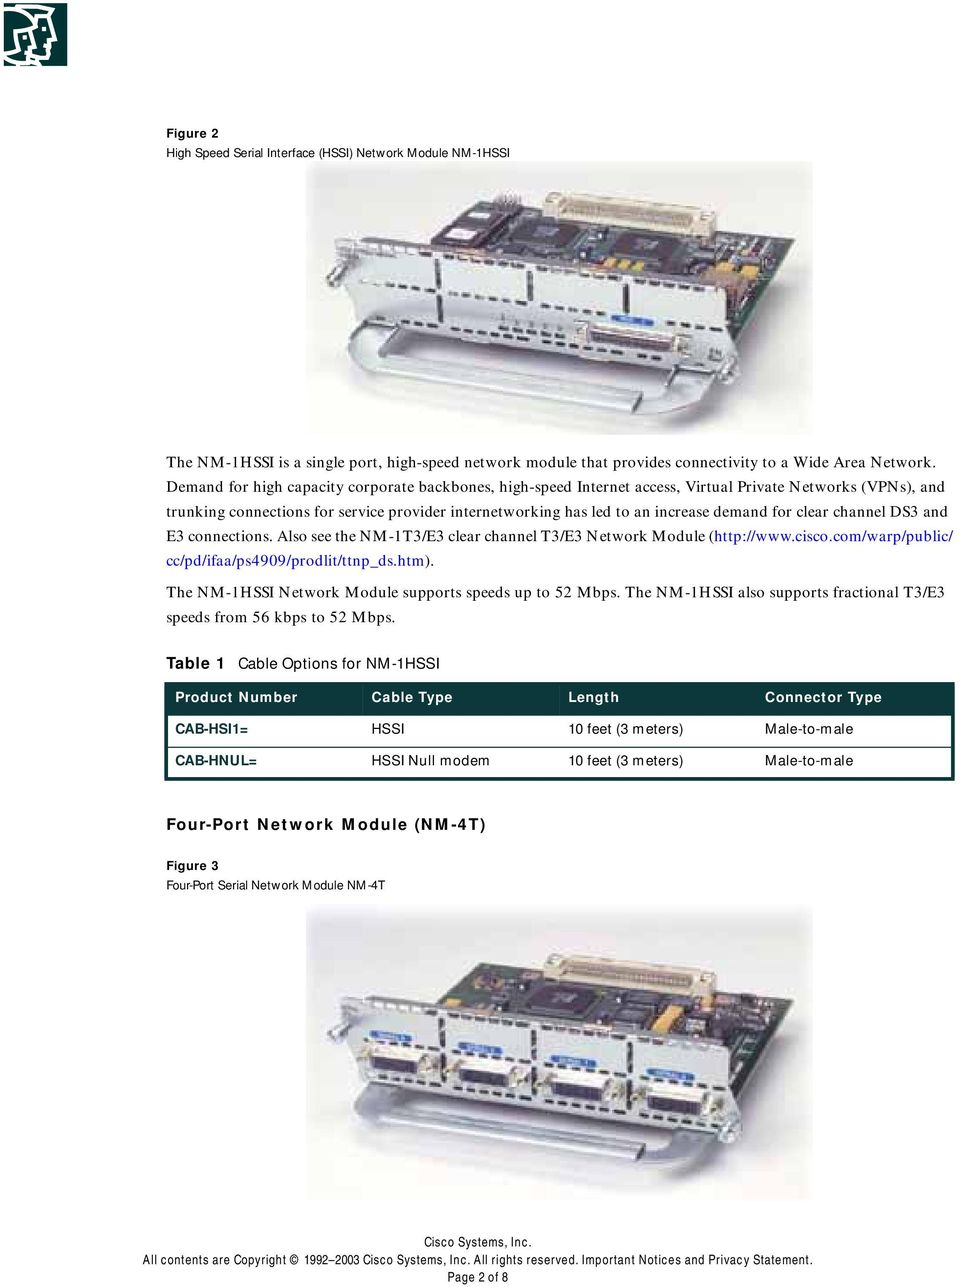 for clear channel DS3 and E3 connections. Also see the NM-1T3/E3 clear channel T3/E3 Network Module (http://www.cisco.com/warp/public/ cc/pd/ifaa/ps4909/prodlit/ttnp_ds.htm).